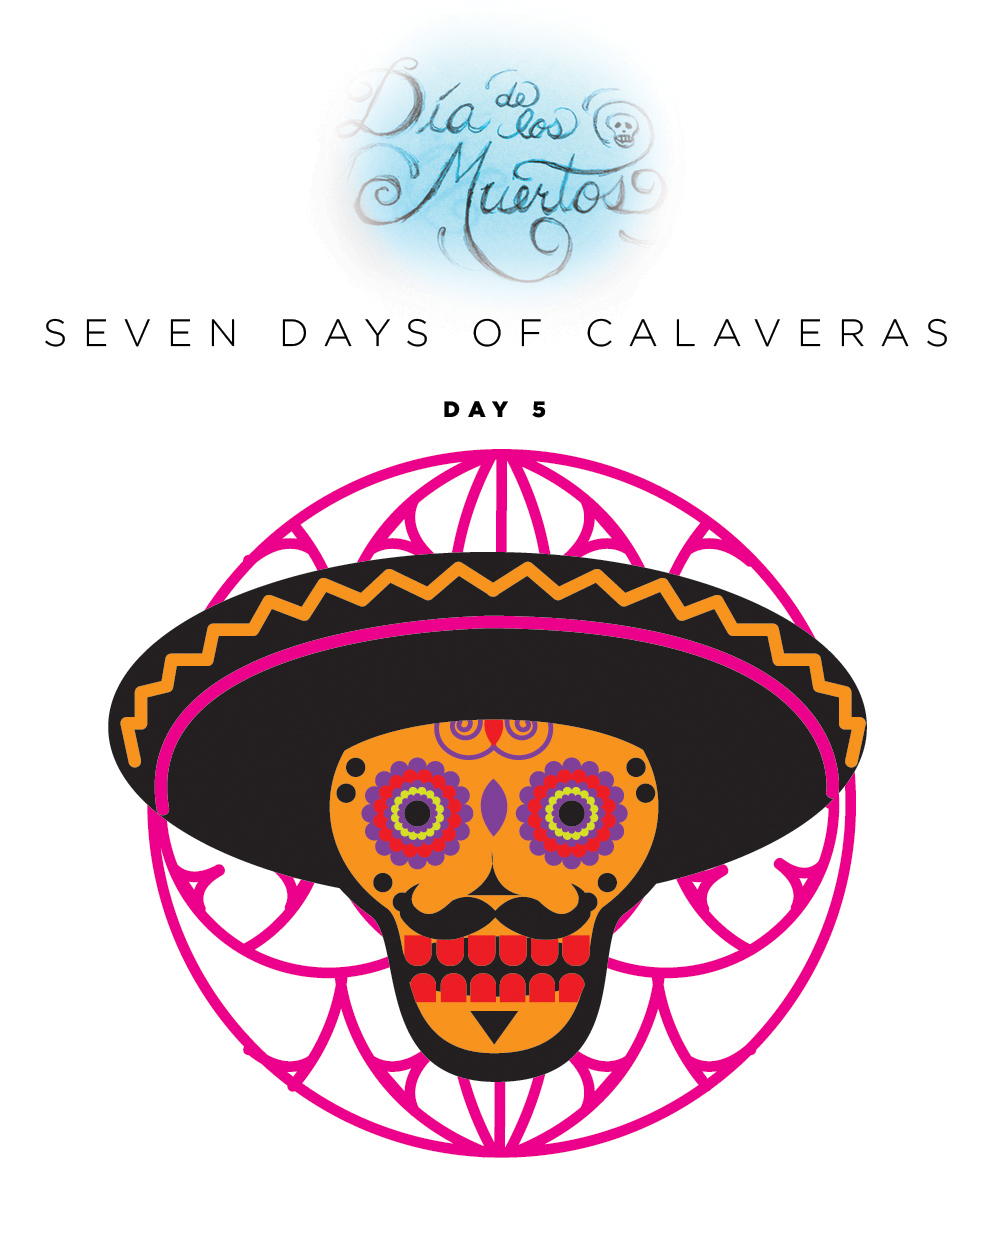 SEVEN days of calaveras day 5